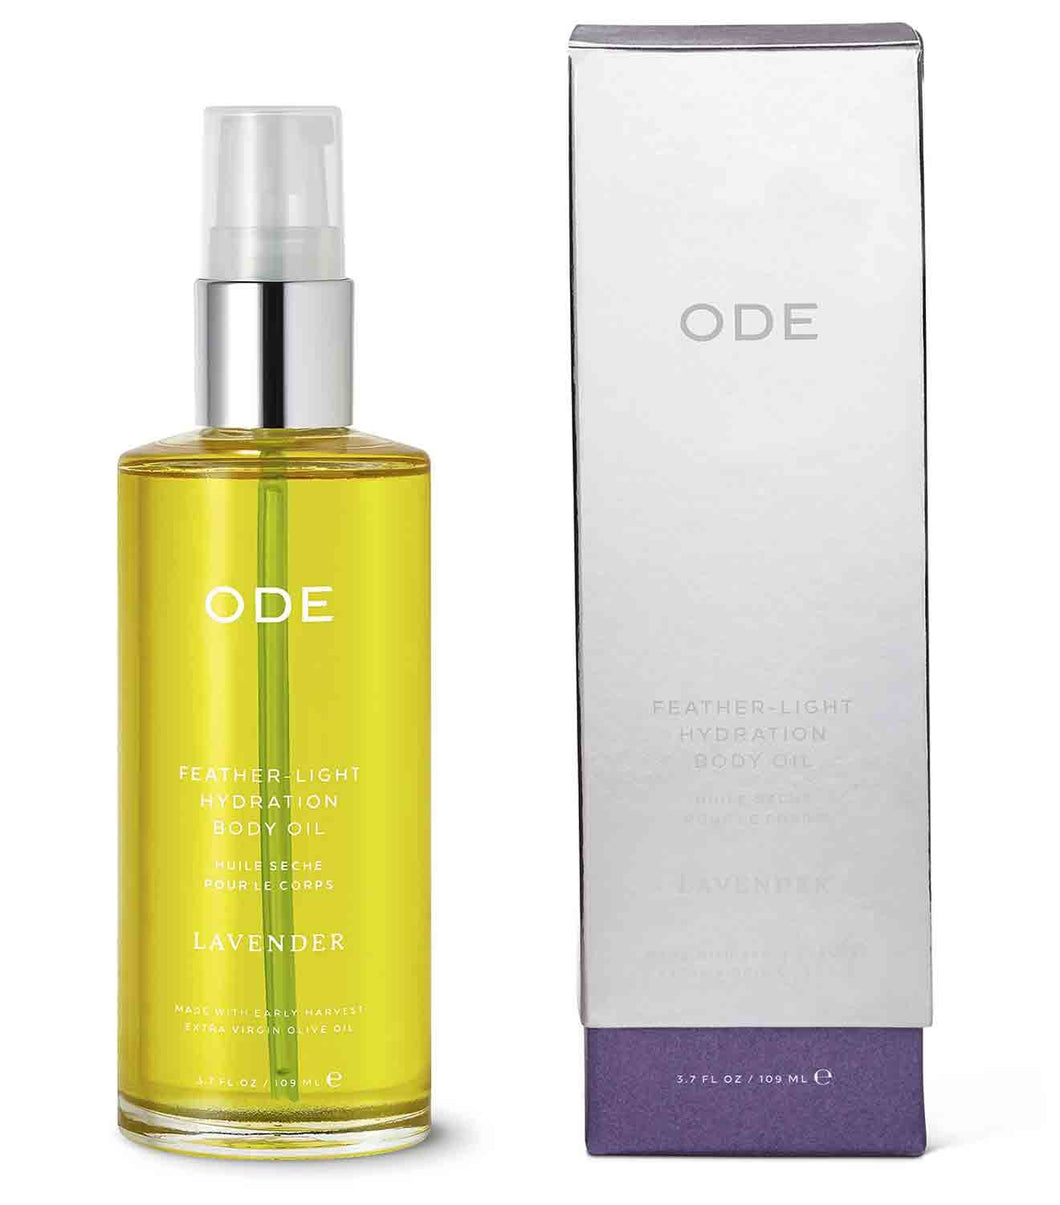 ODE Hydration Body Oil - Lavender